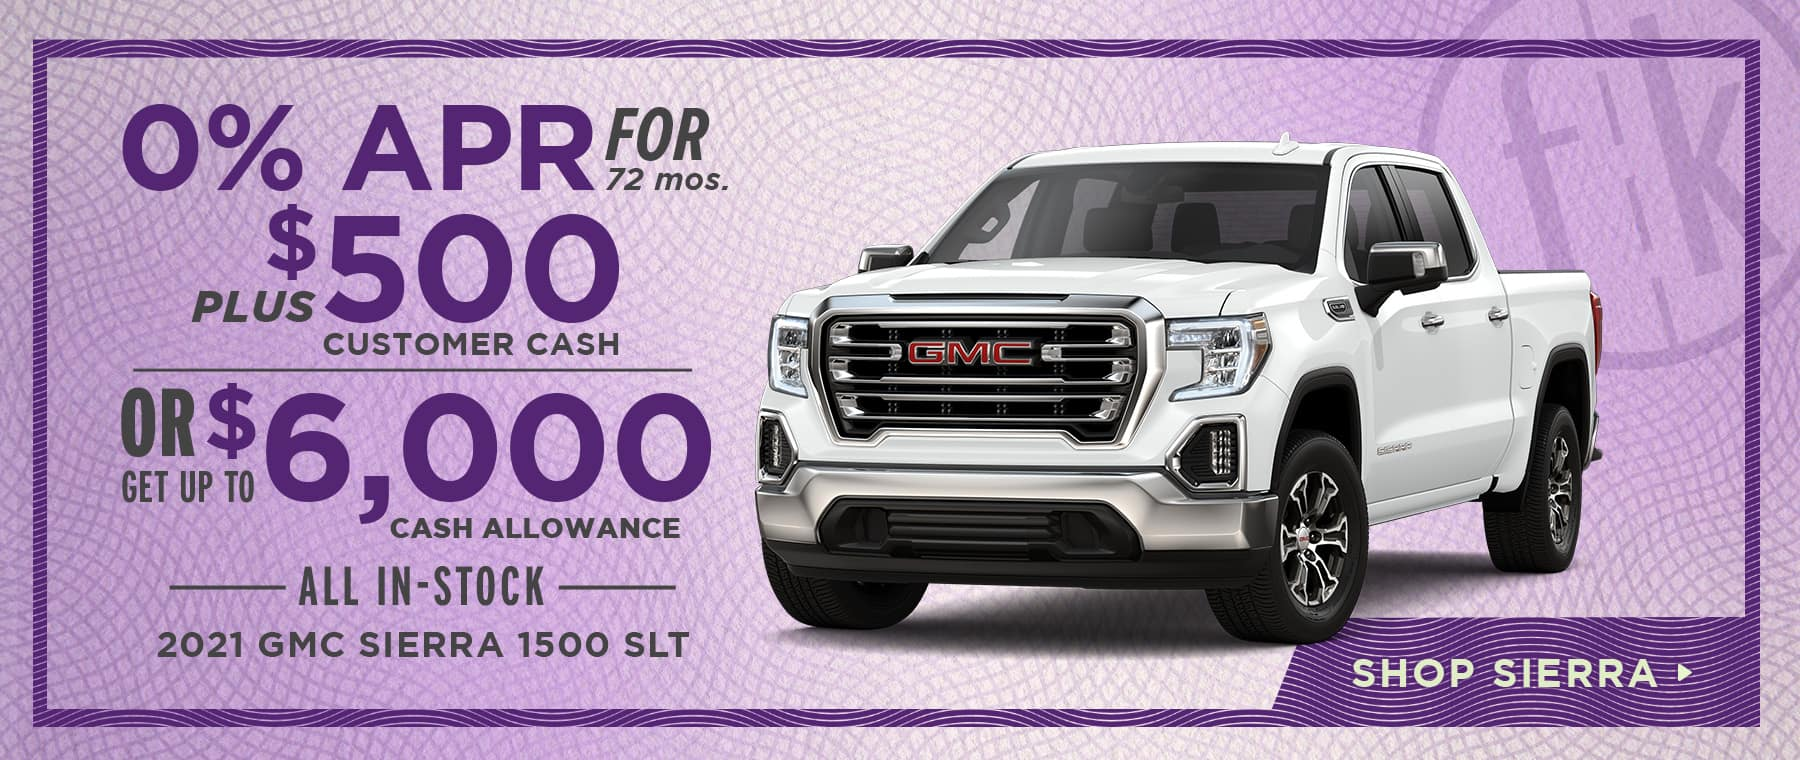 0% for 72 mos. PLUS $500 Customer Cash OR Get Up To $6,000 Cash Allowance All In-Stock 2021 GMC Sierra 1500 SLT